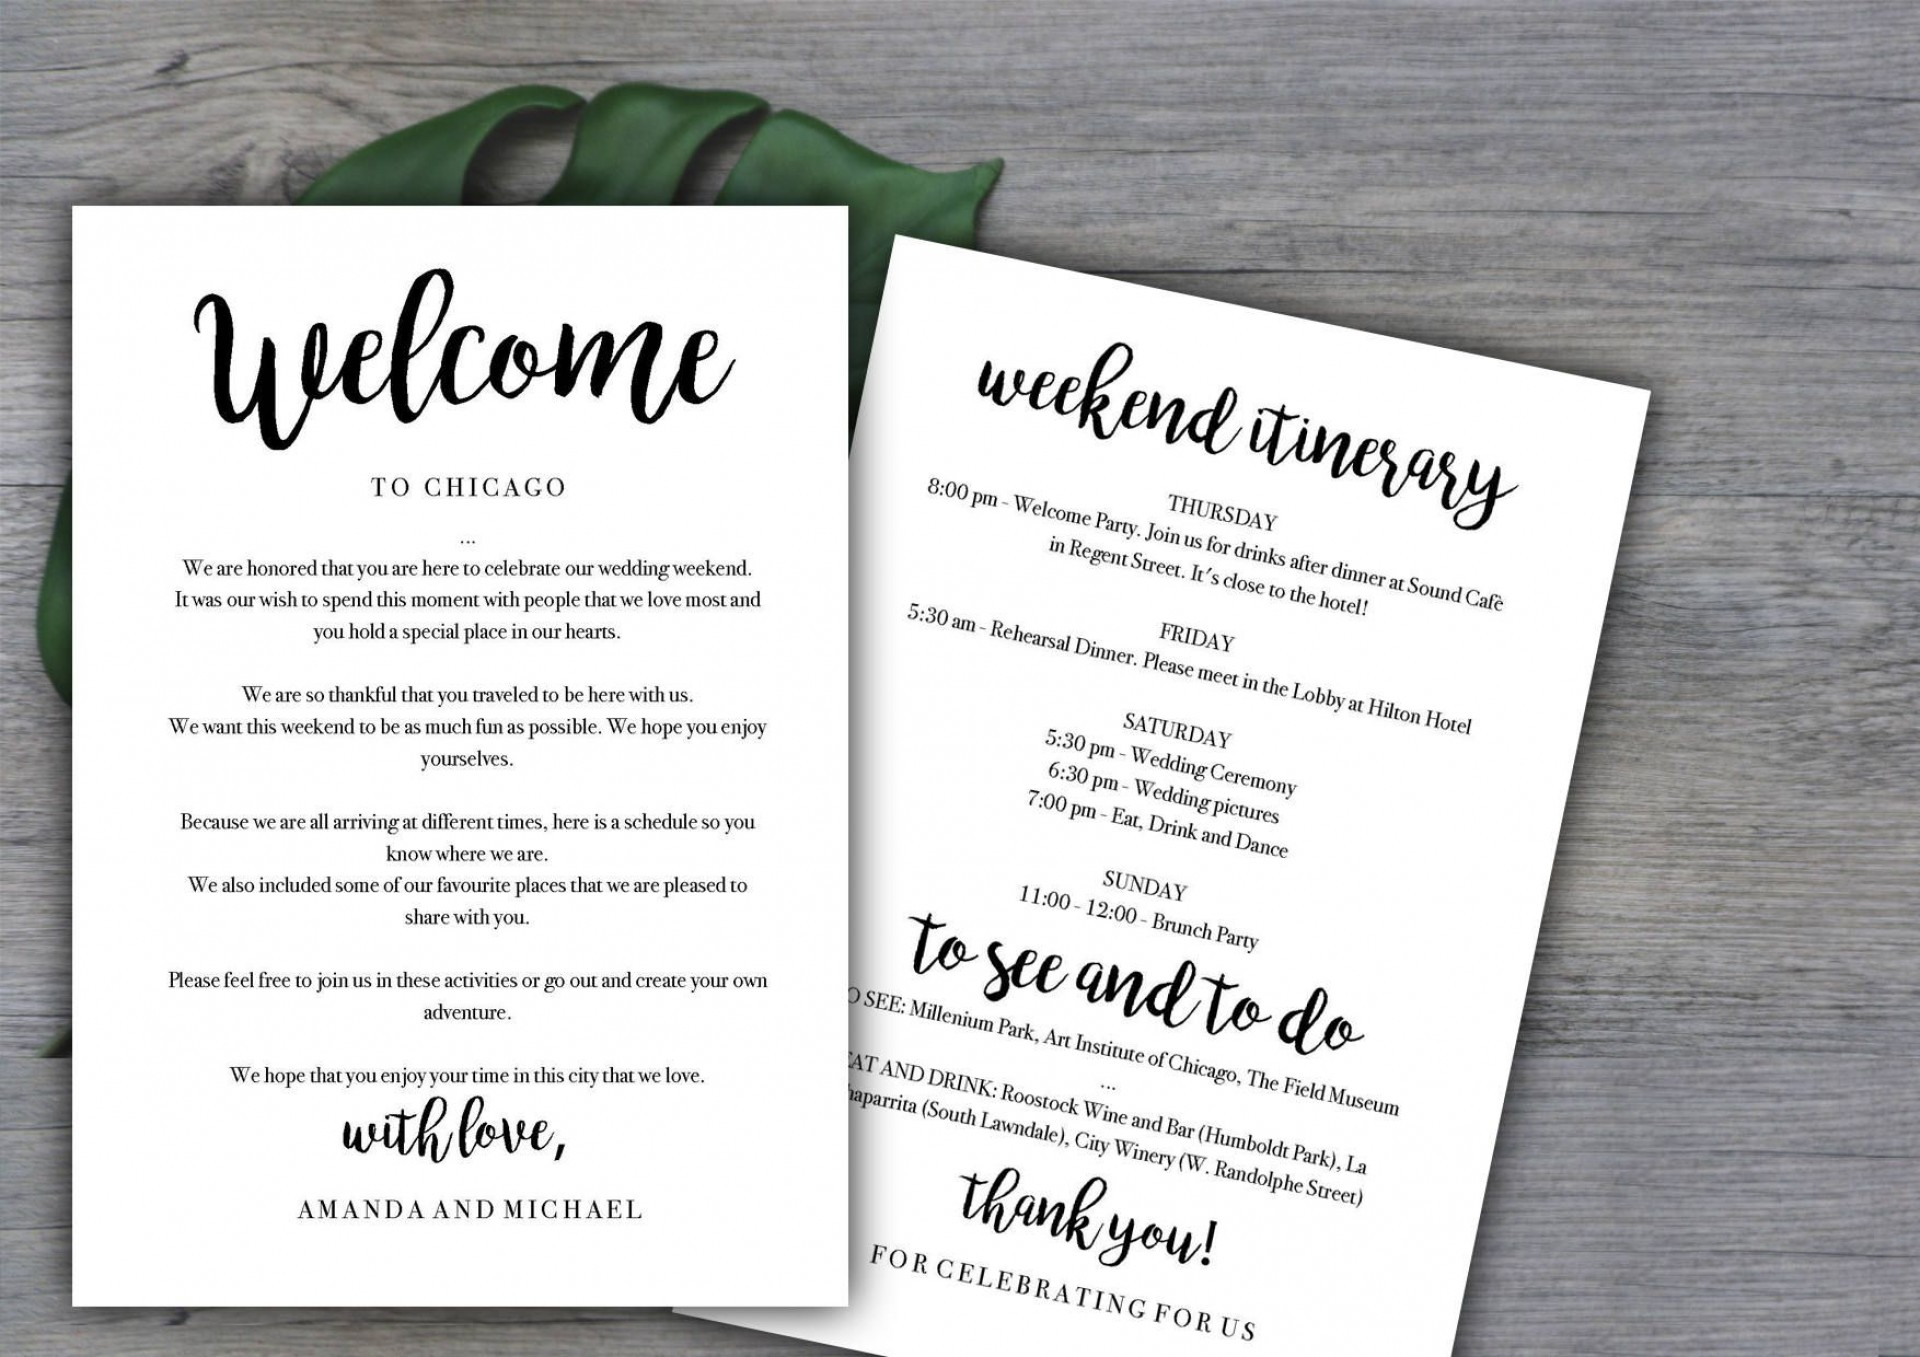 005 Dreaded Free Destination Wedding Welcome Letter Template Highest Clarity 1920